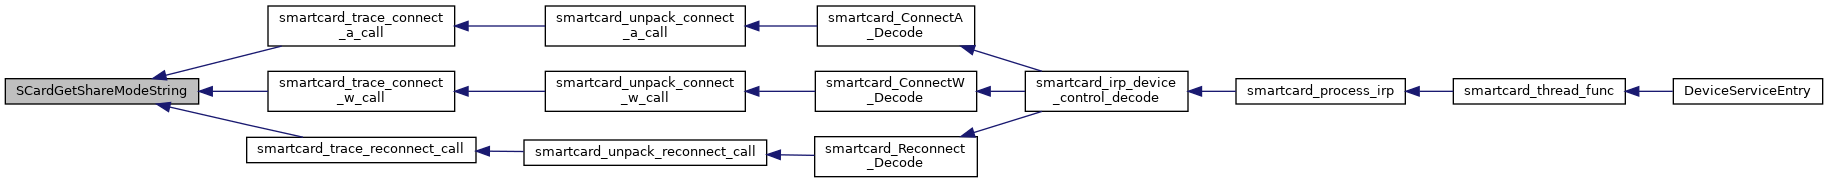 FreeRDP: smartcard h File Reference